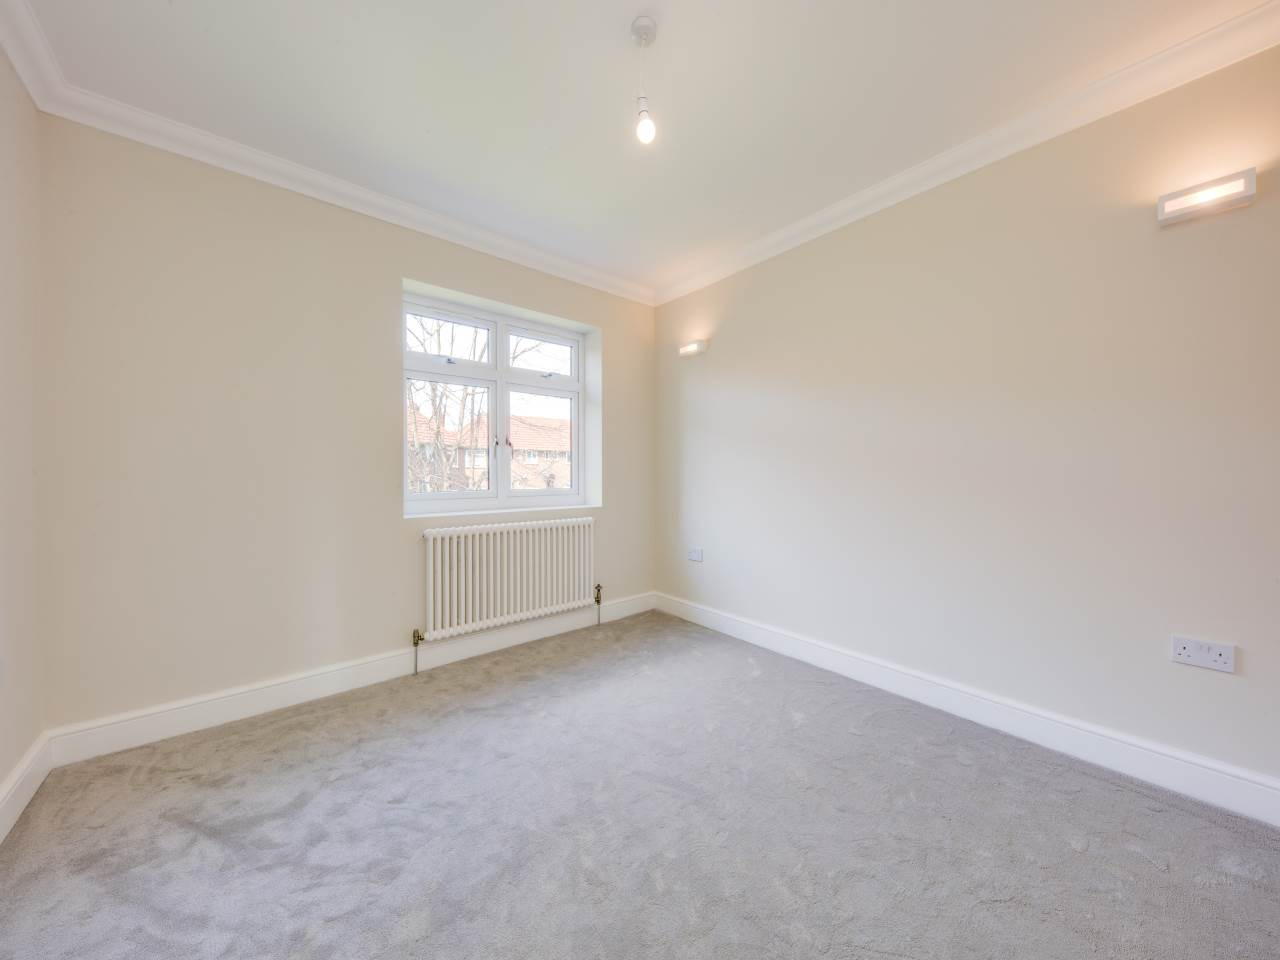 3 bed house for sale in Shernhall Street , Walthamstow  10